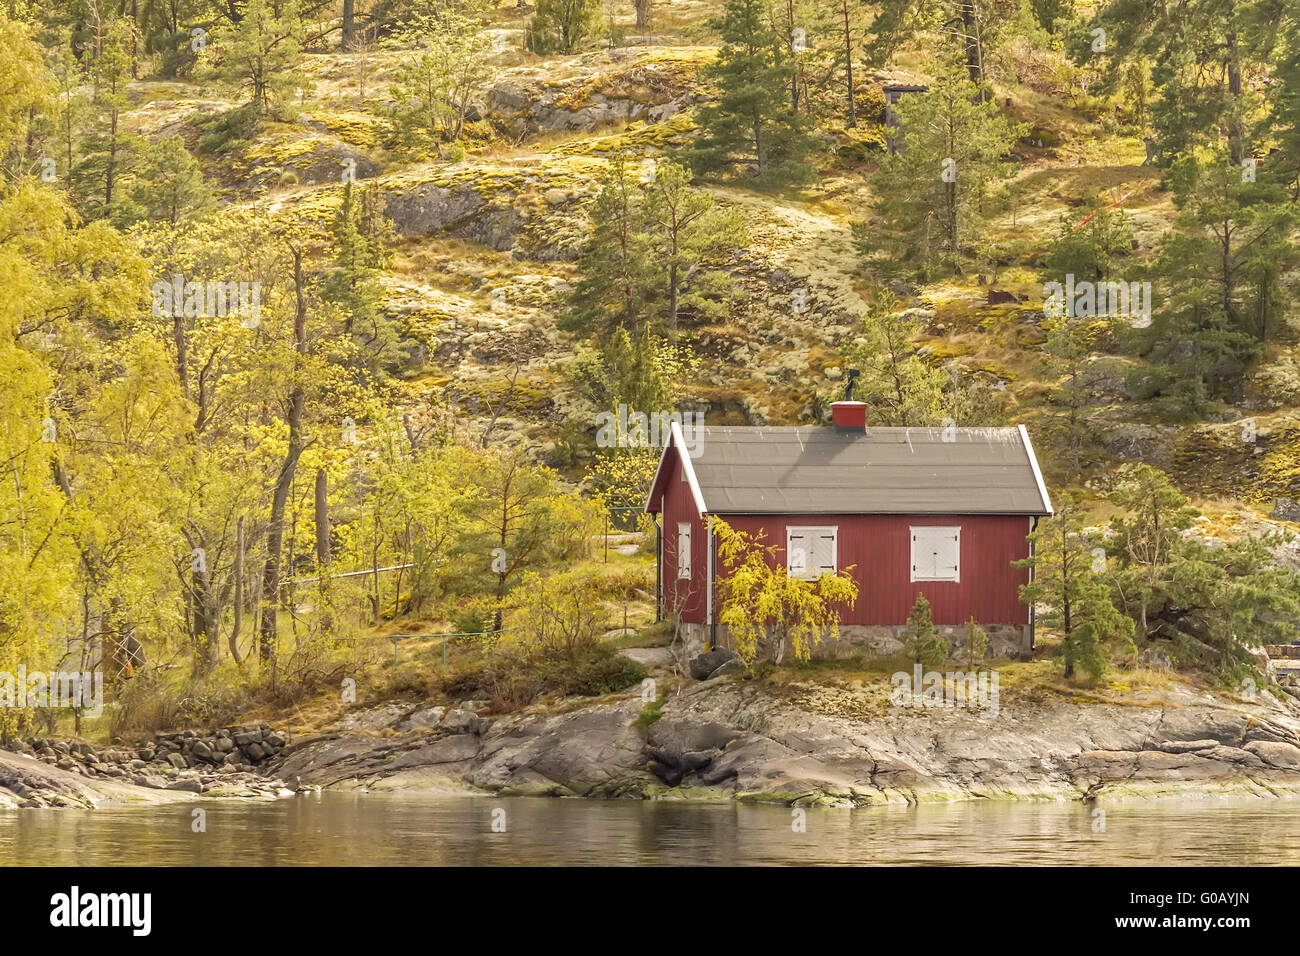 Fishing Hut At The Bottom Of The Hill Stockholm Sw - Stock Image